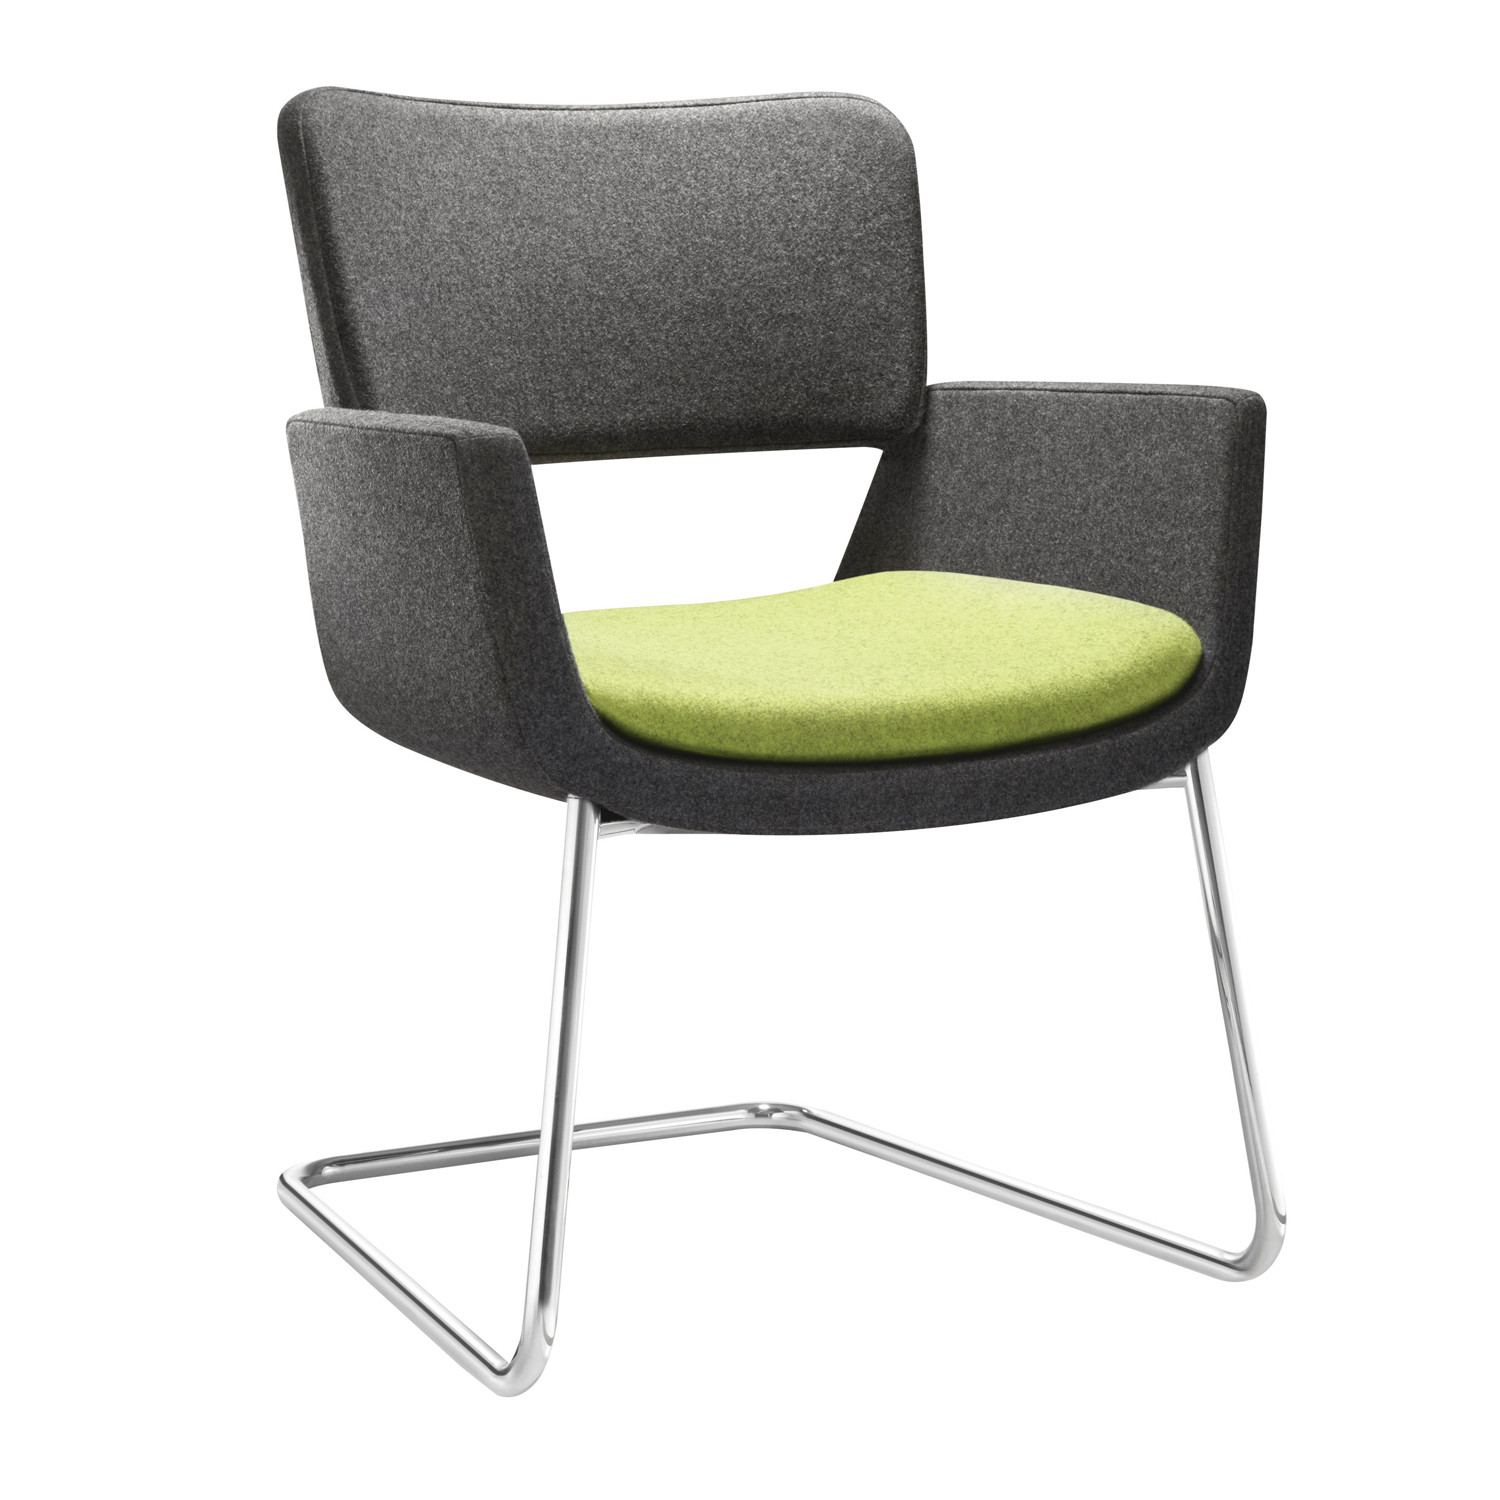 Korus Cantilever Chair